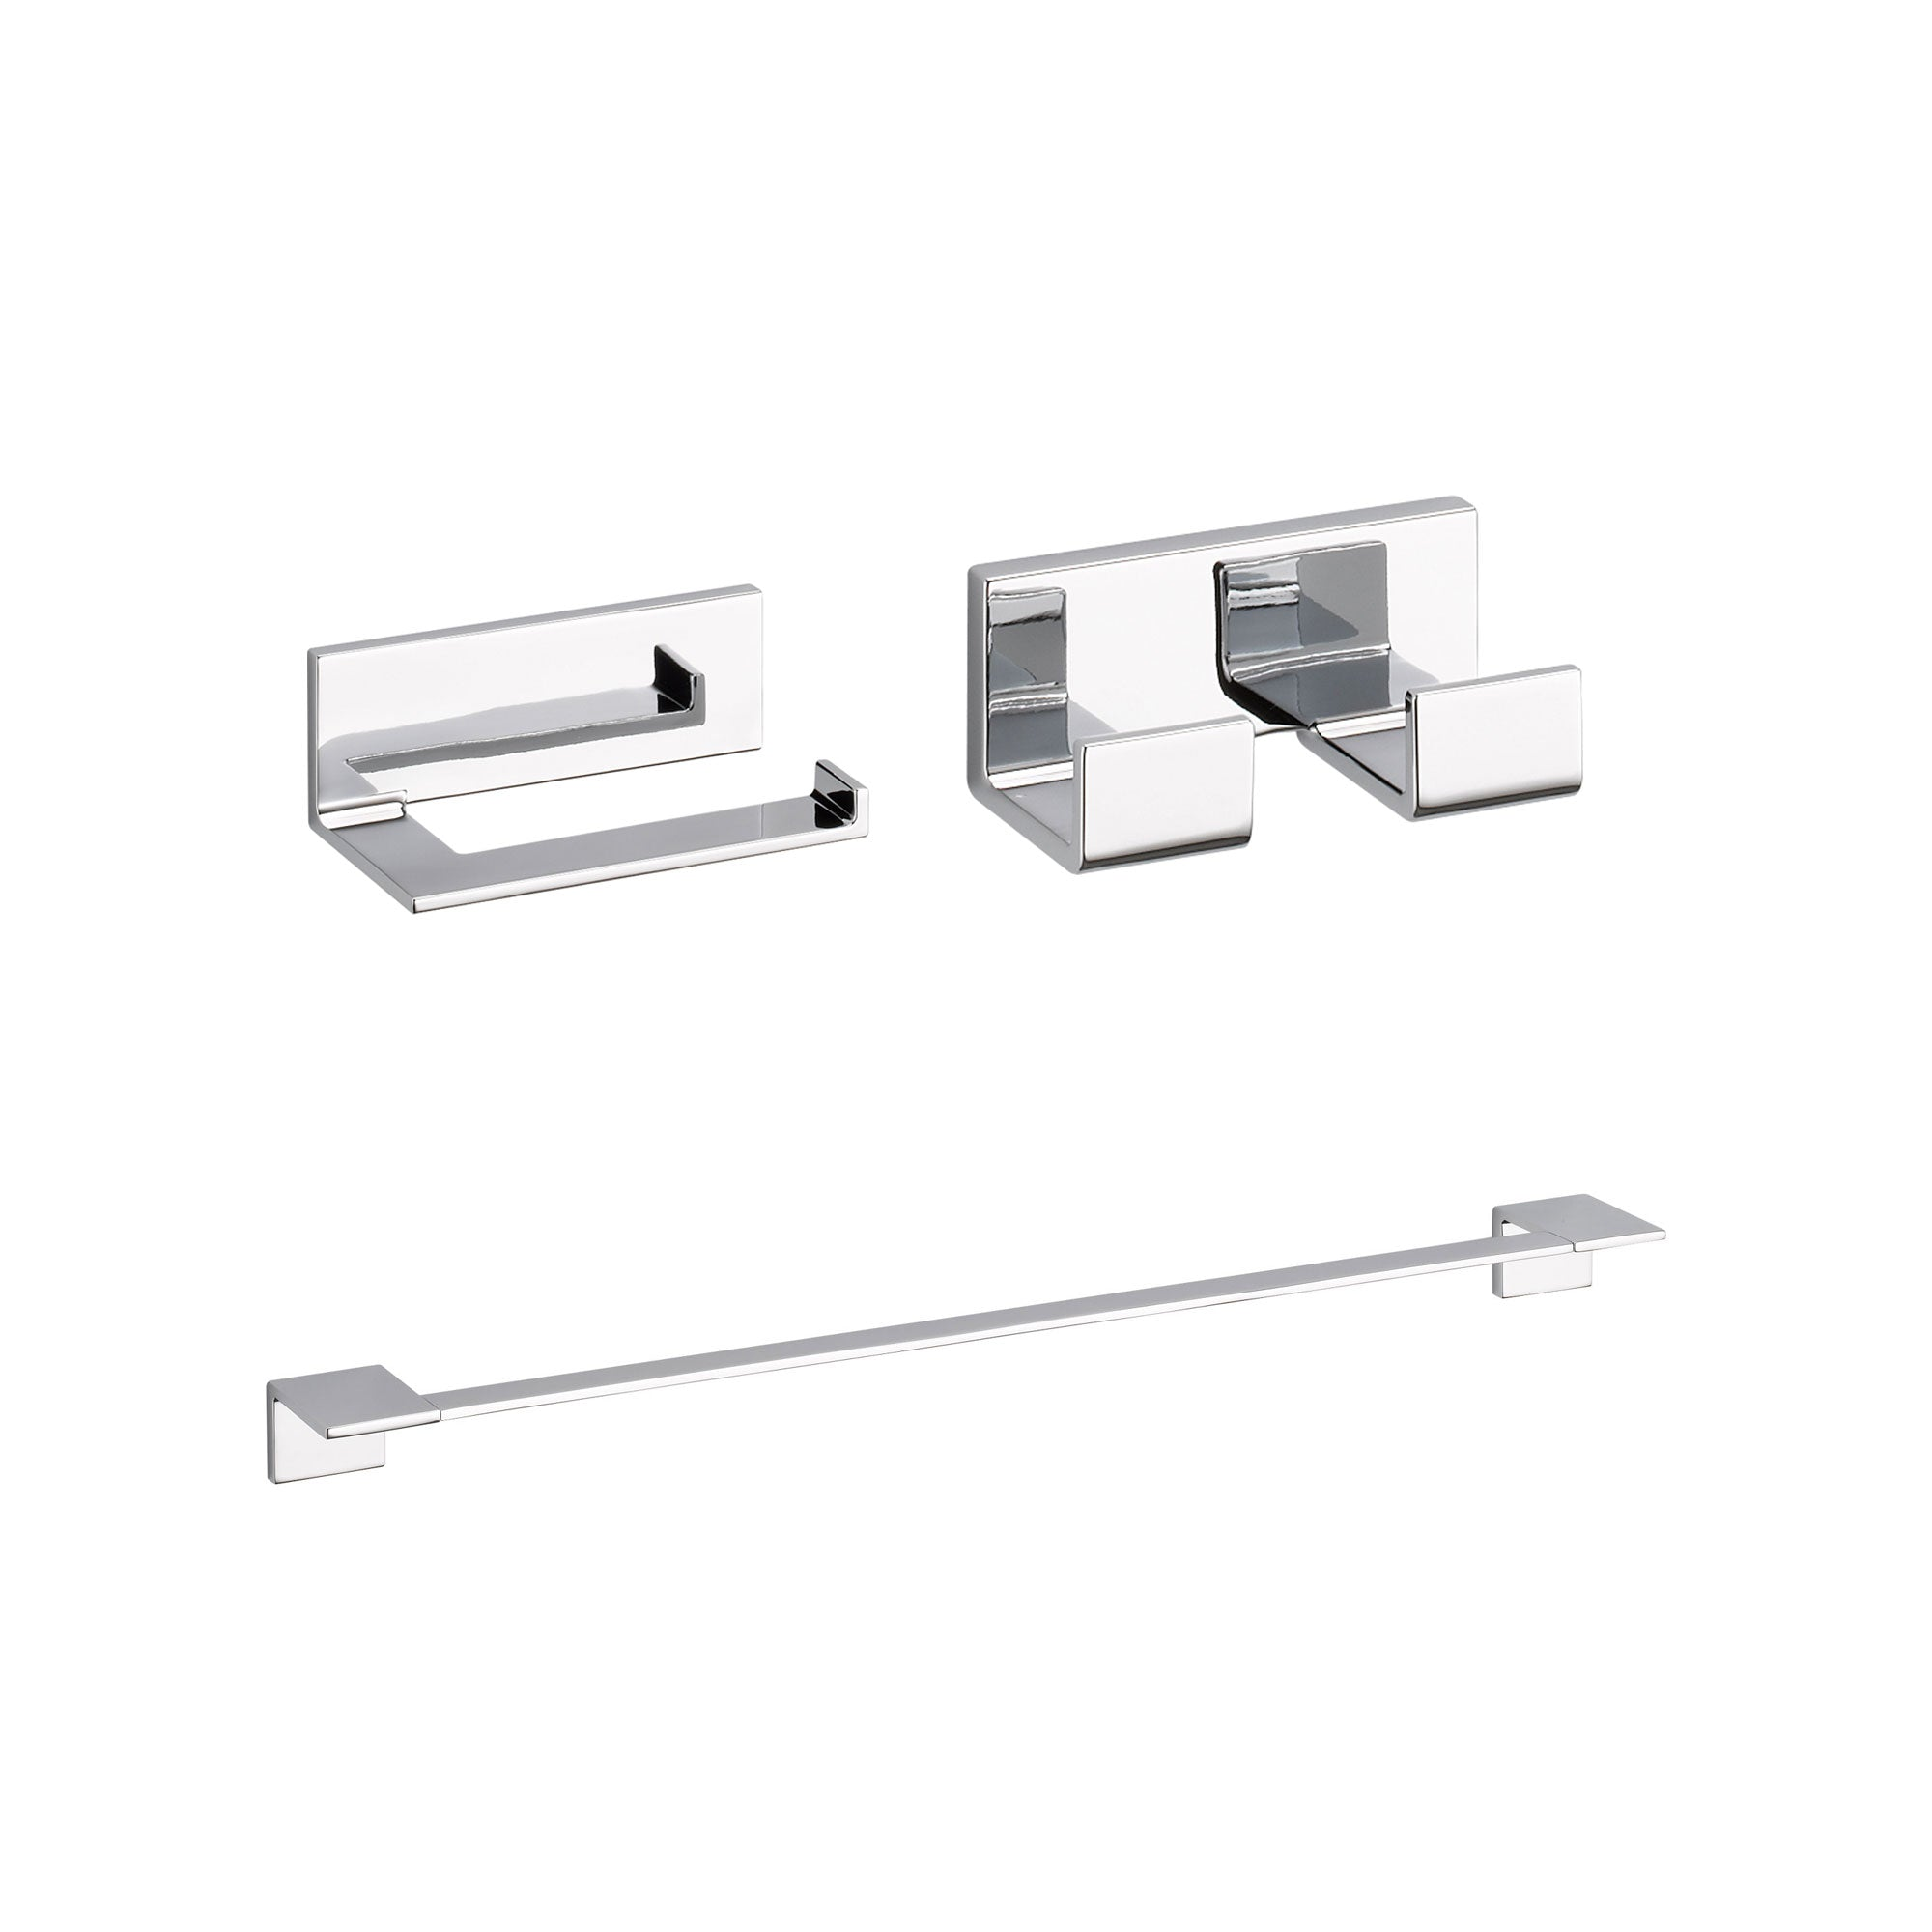 "Delta Vero Chrome BASICS Bathroom Accessory Set Includes: 24"" Towel Bar, Toilet Paper Holder, and Double Robe Hook D10054AP"